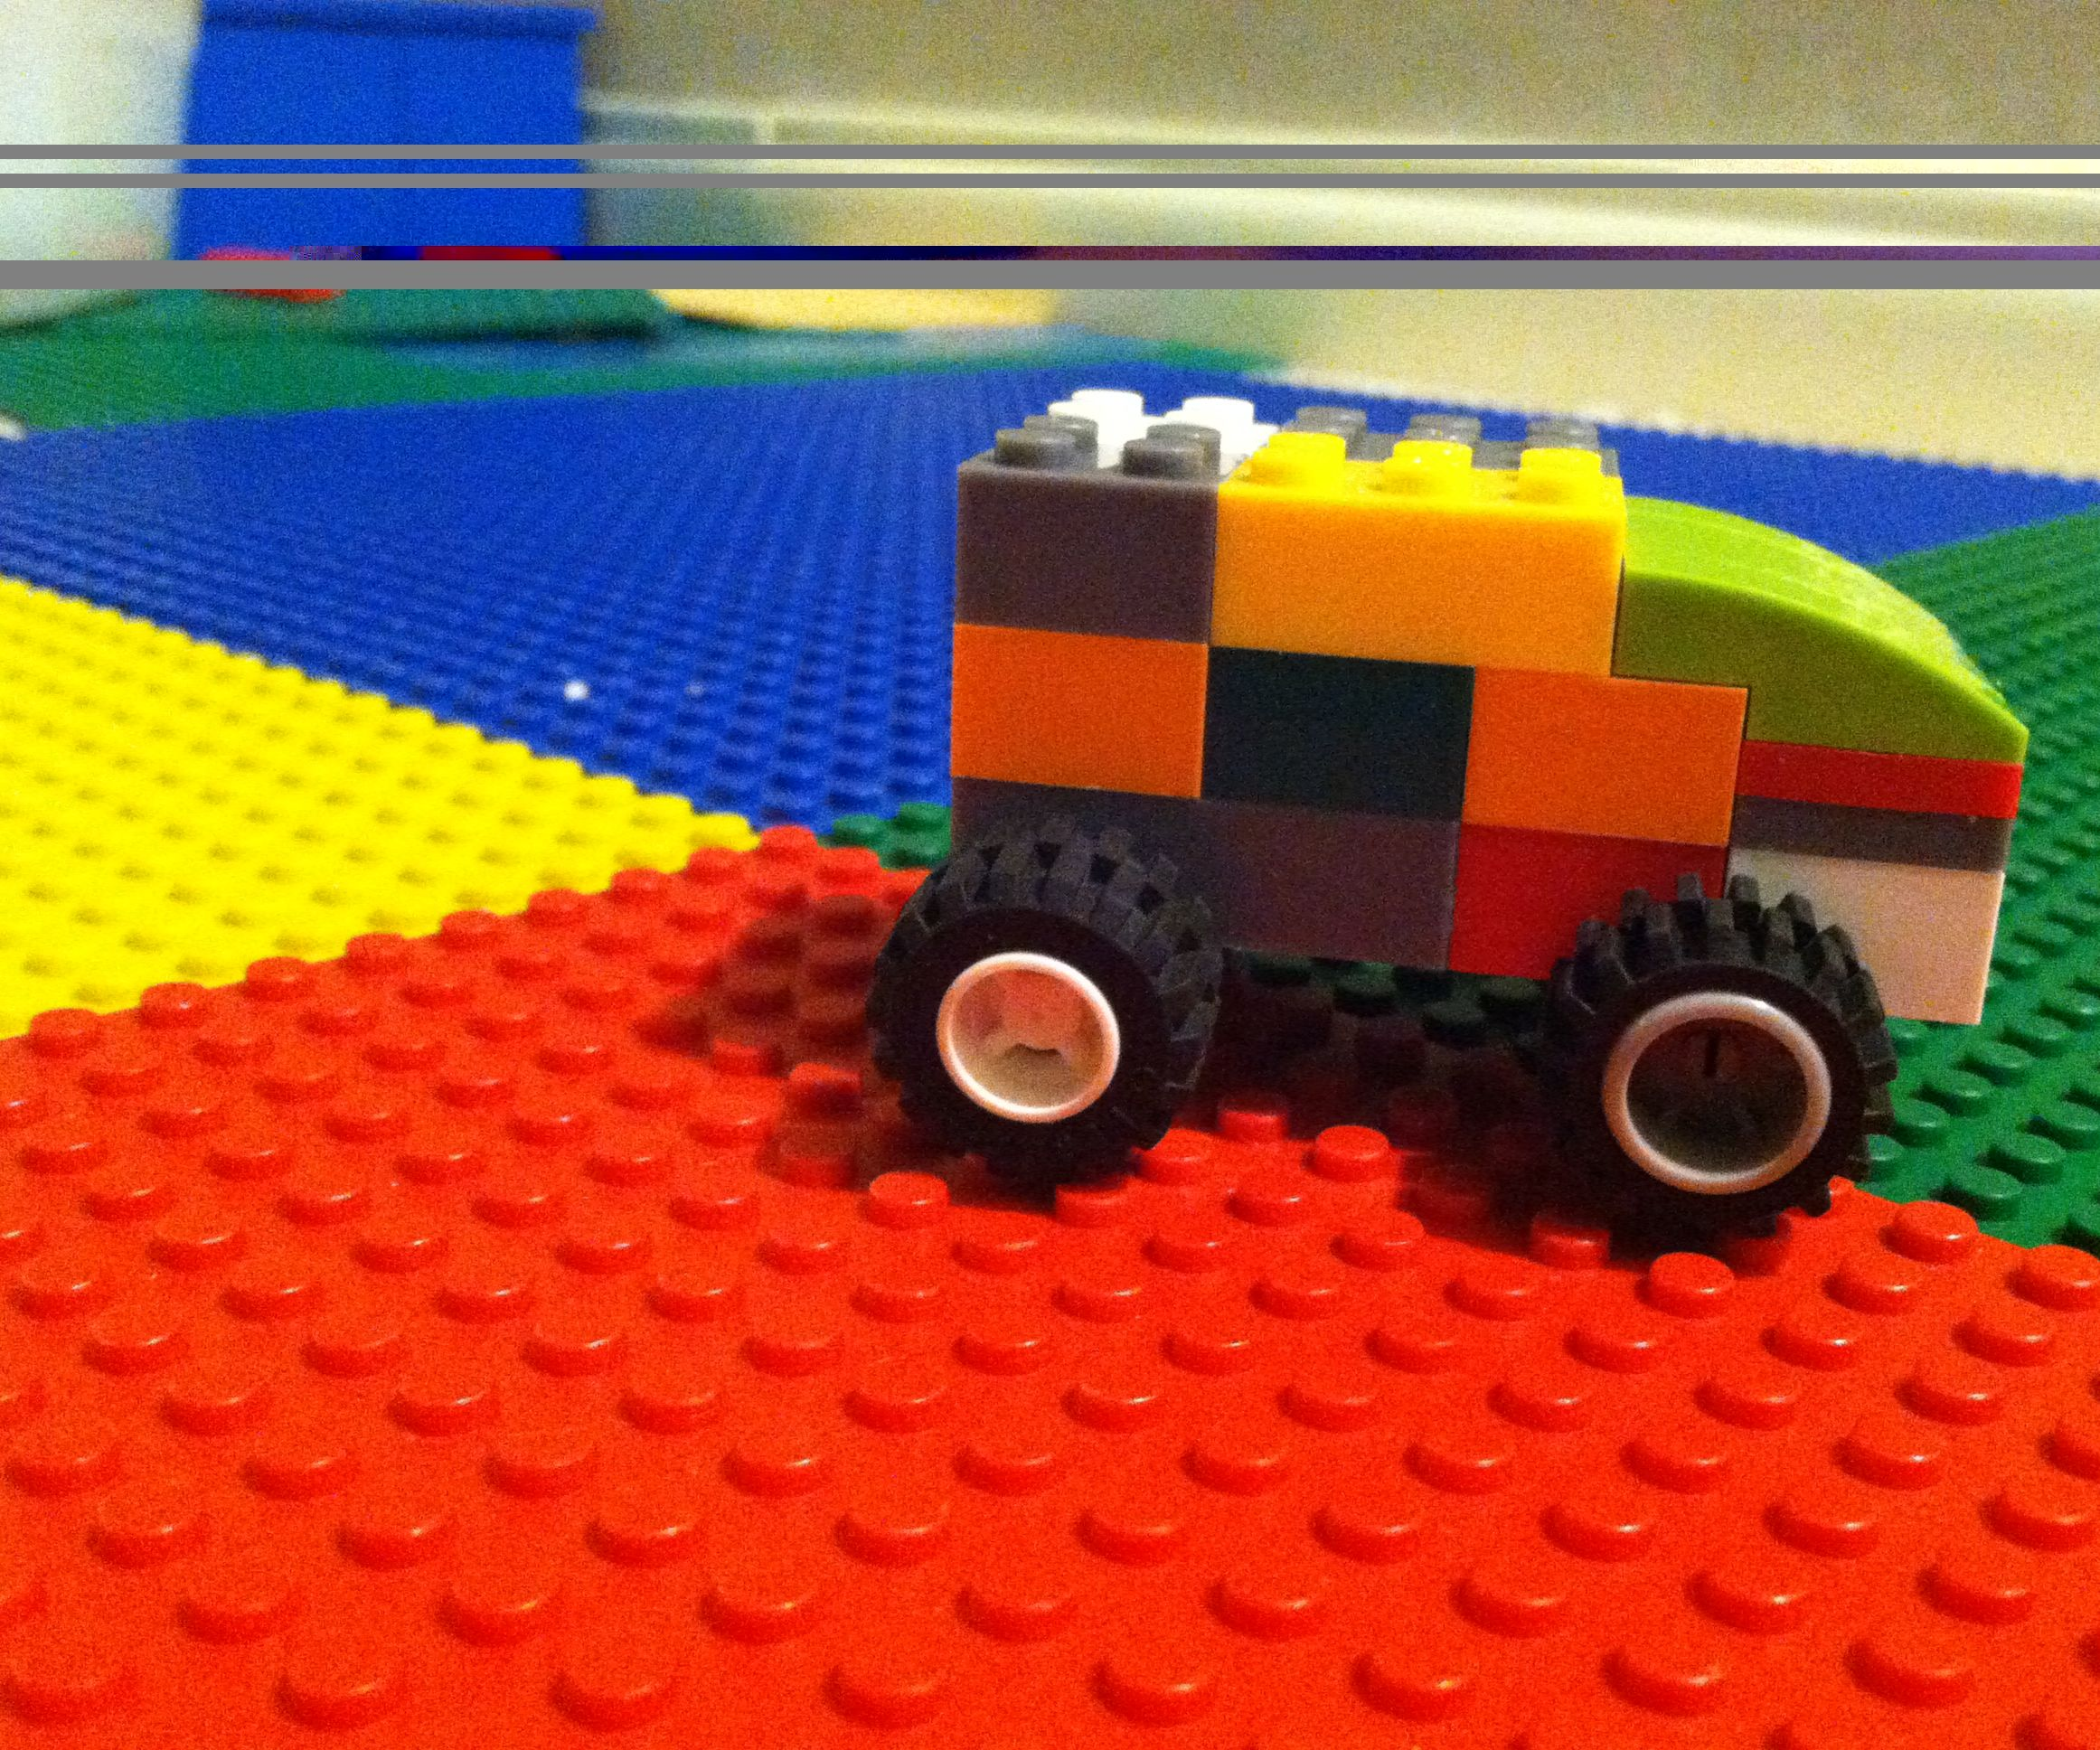 How to Make a Lego Truck/car